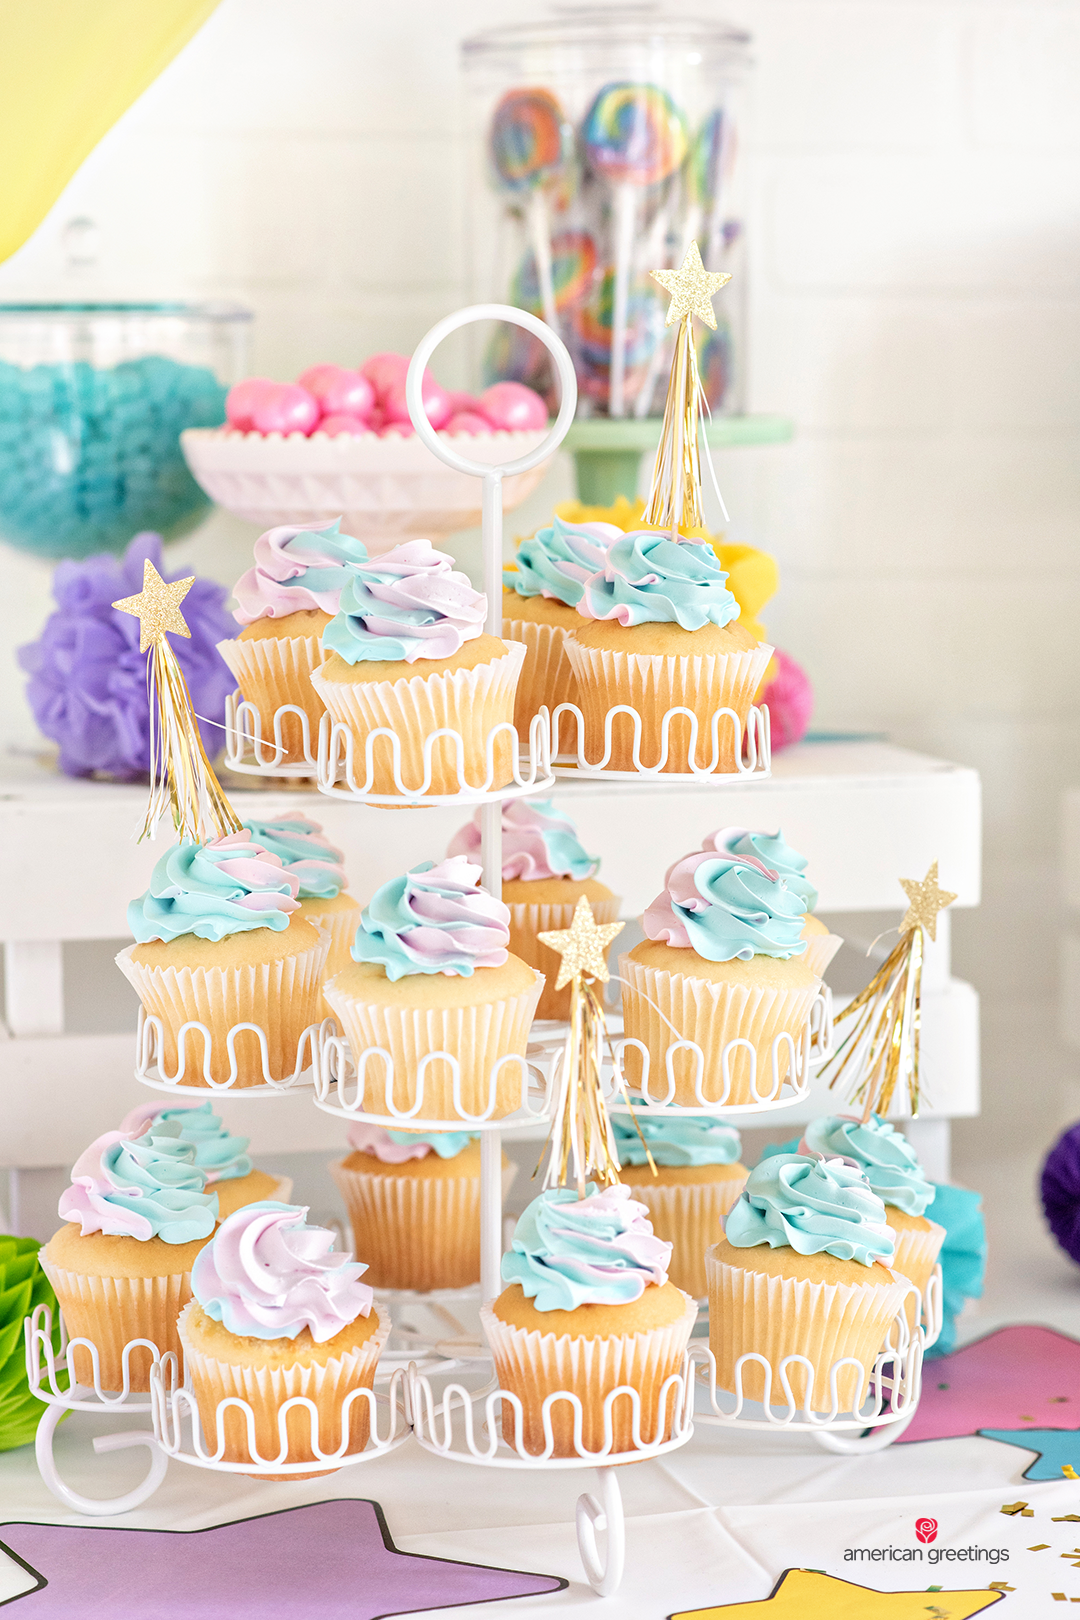 Cupcakes dressed up with gold tassel party picks placed on multiple hight levels.